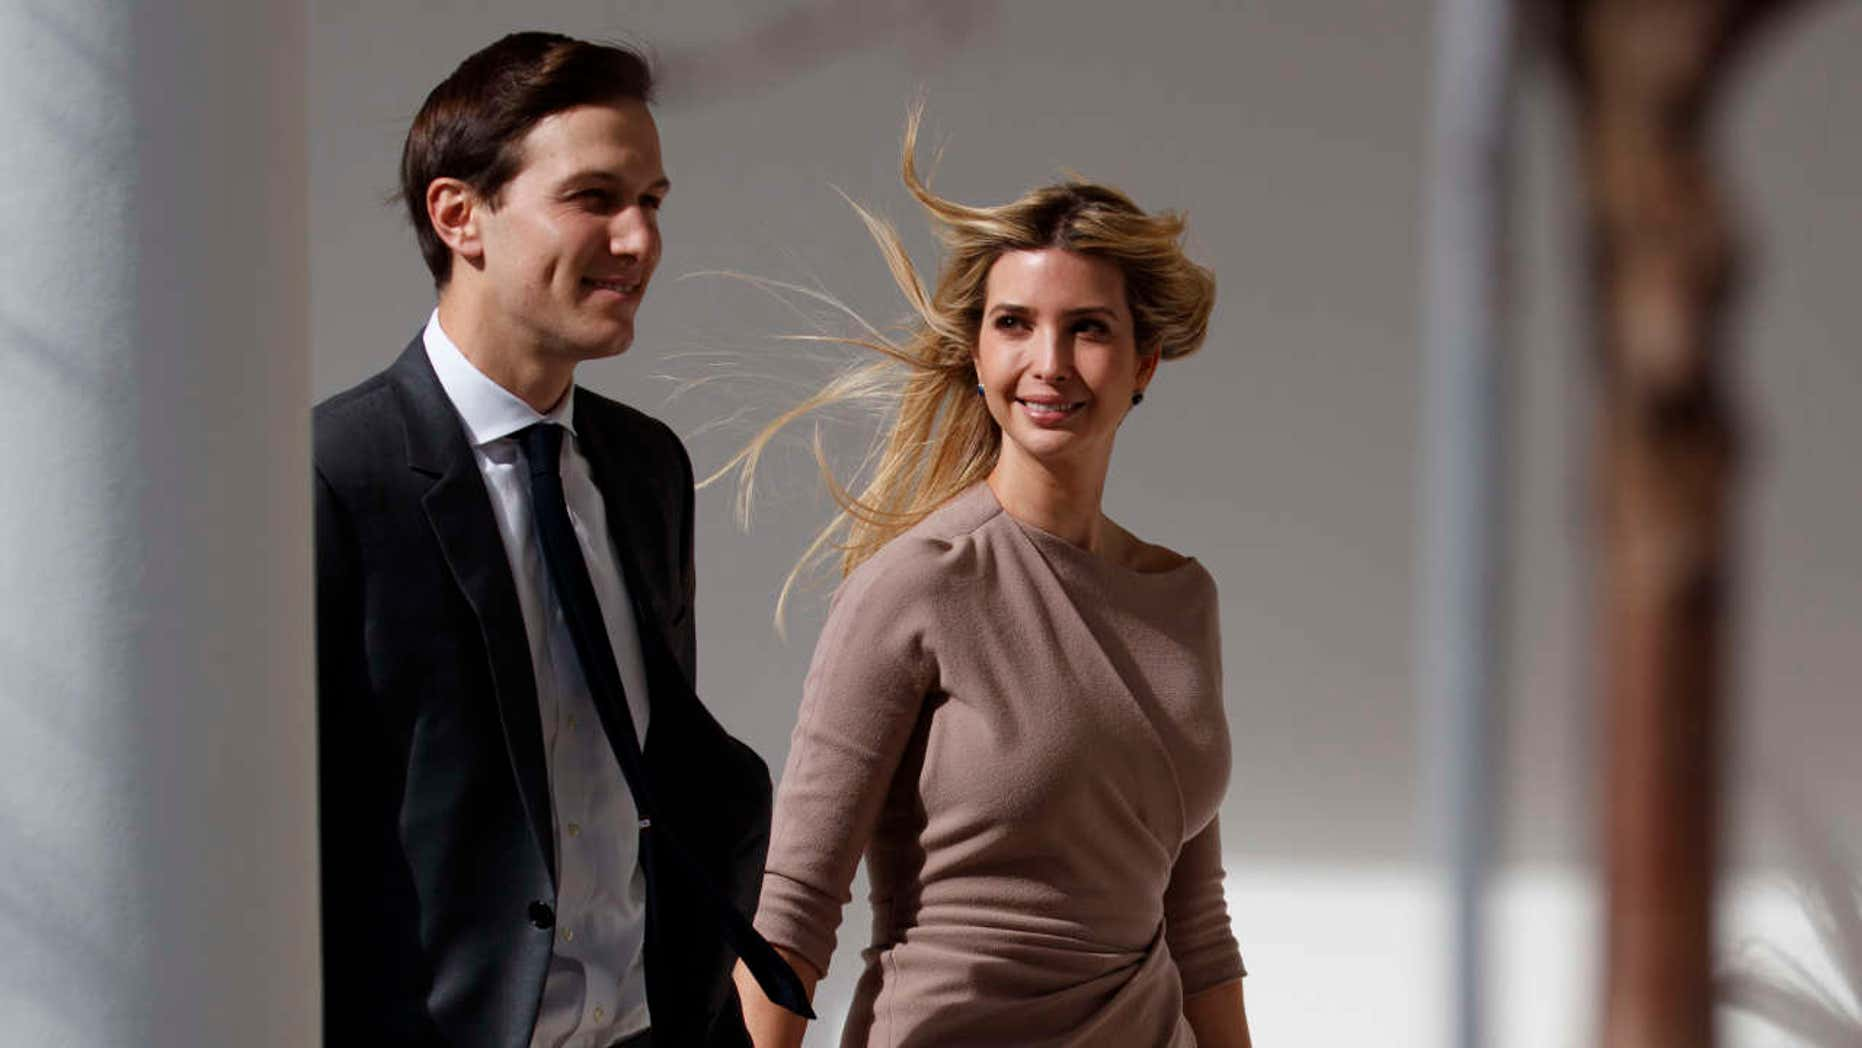 Ivanka Trump, right, walks with her husband Jared Kushner, senior adviser to the president, to a news conference with President Donald Trump and Japanese Prime Minister Shinzo Abe, Friday, Feb. 10, 2017, at the White House in Washington